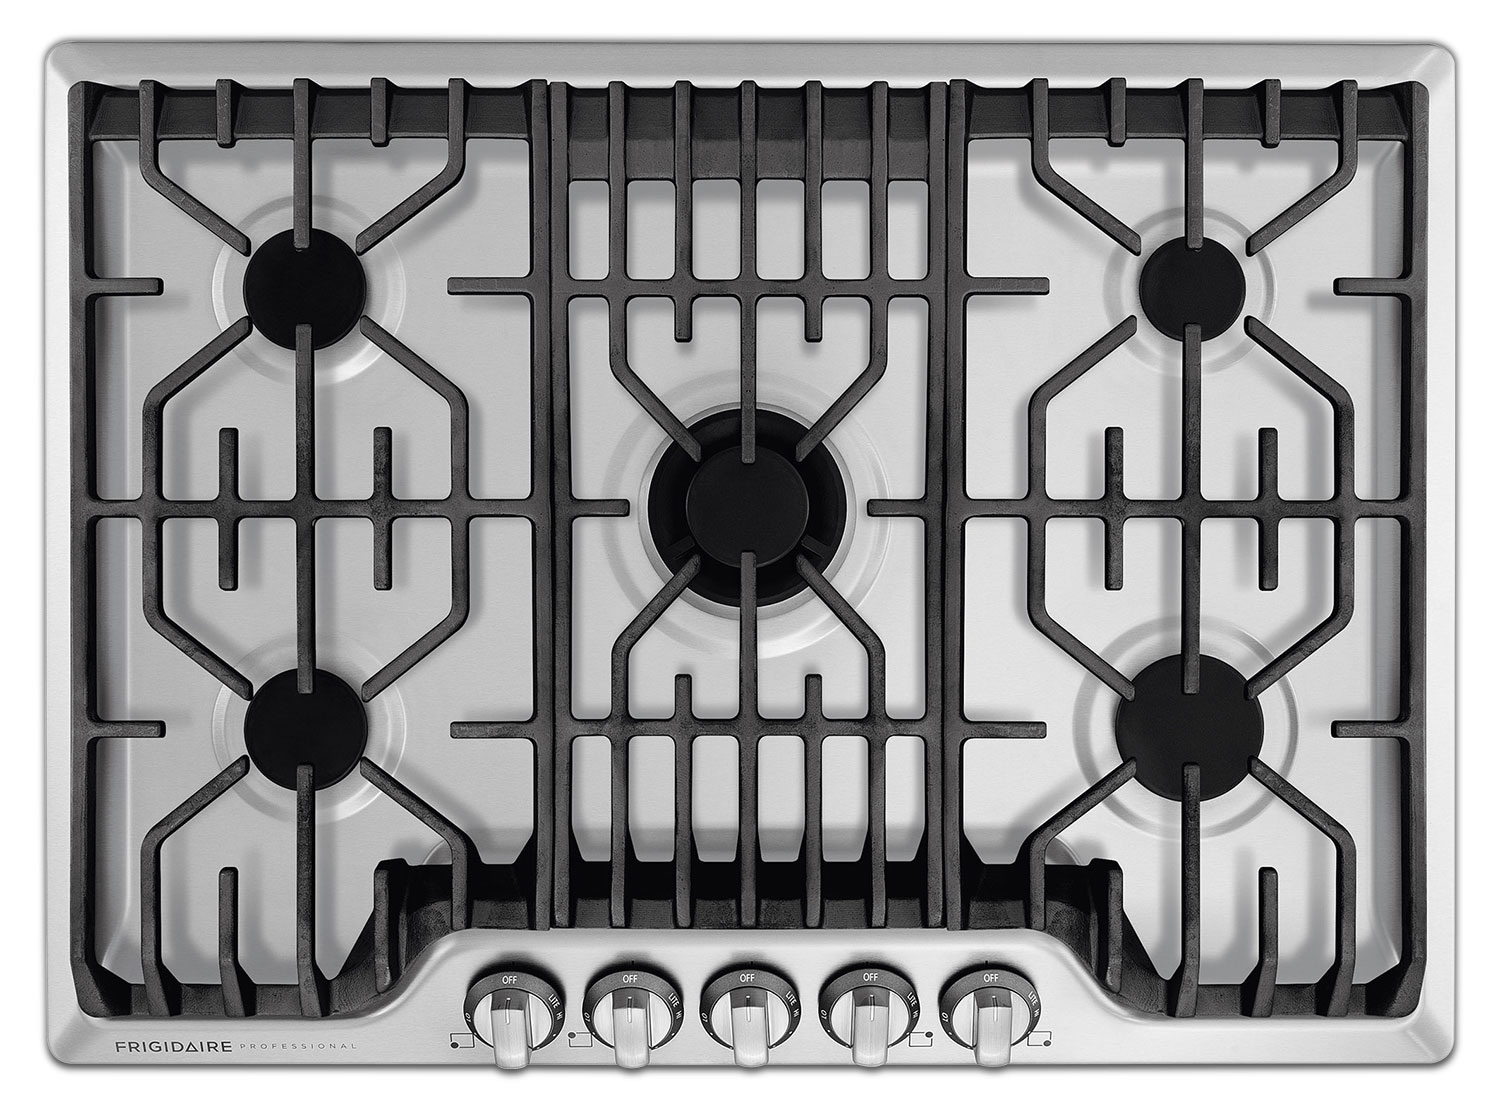 Cooking Products - Frigidaire Professional Stainless Steel Gas Cooktop - FPGC3077RS